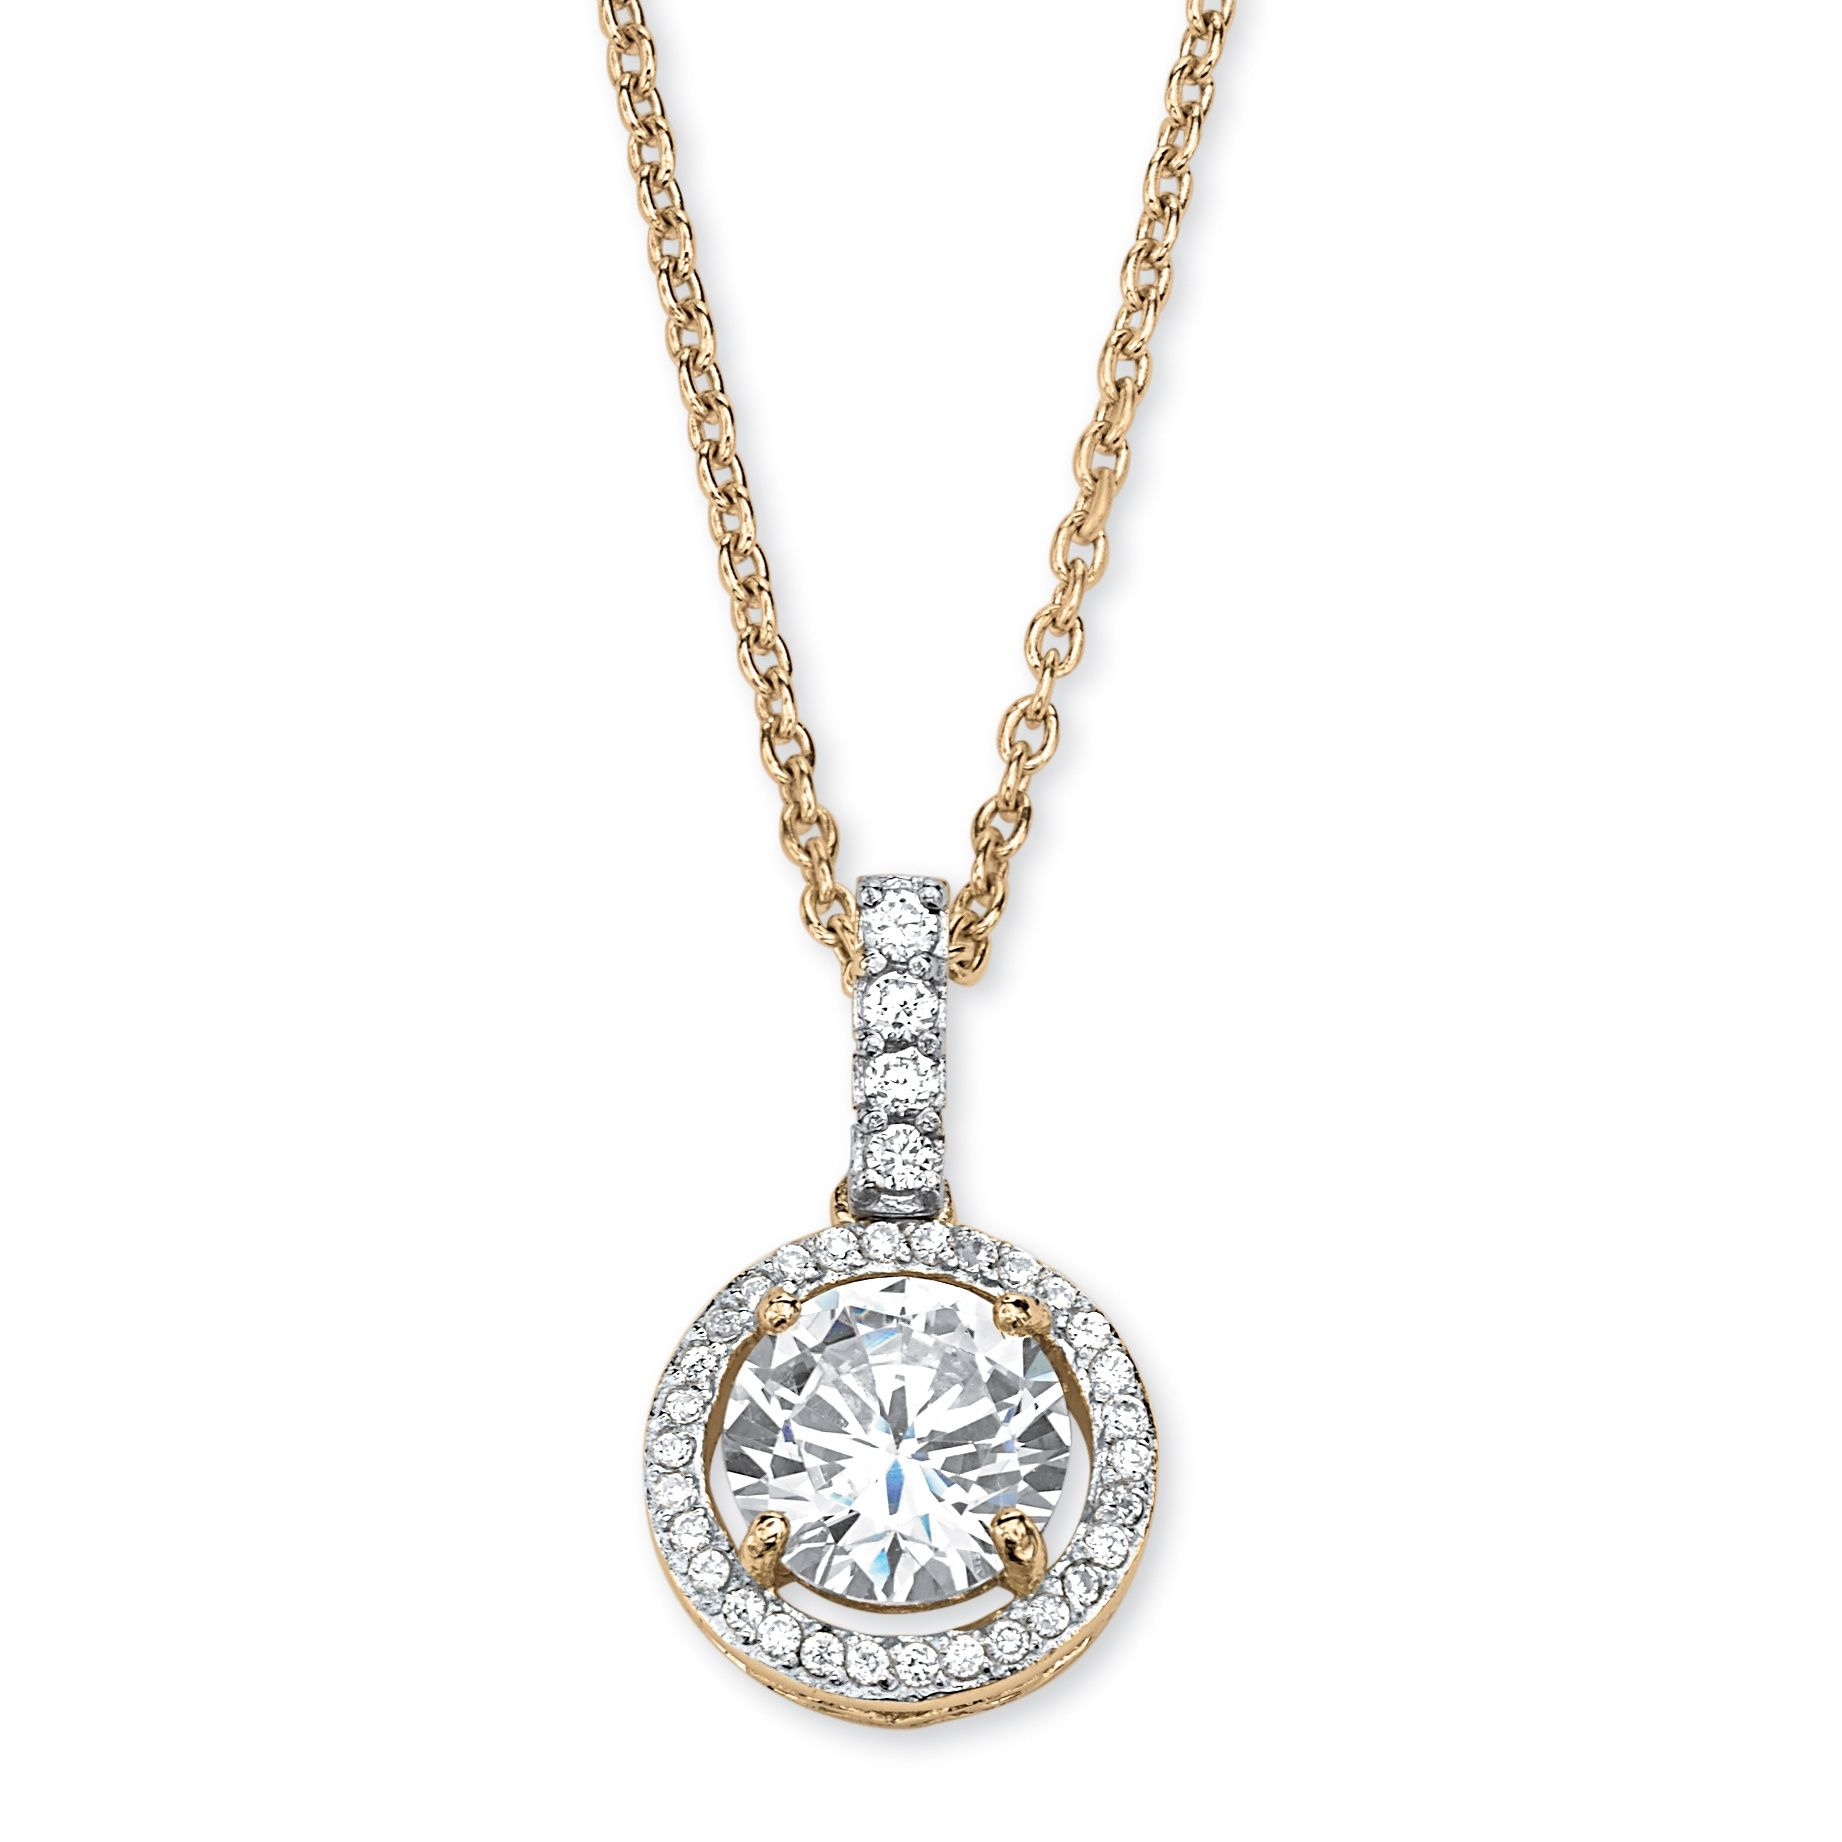 Glowing with a central cubic zirconia stone encircled by ...